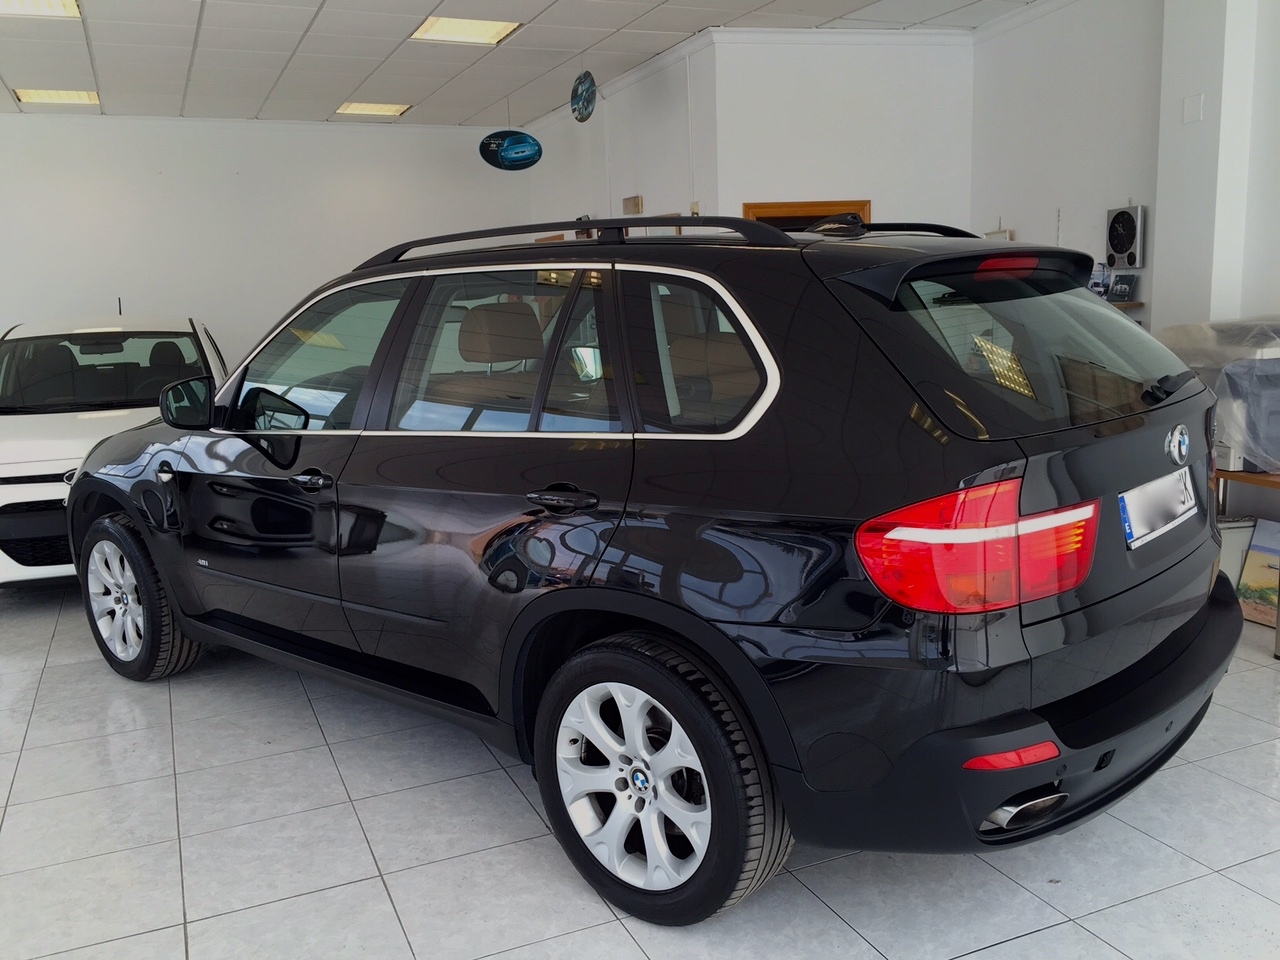 Bmw X5 4 8 Auto 7 Seater New Model Lhd In Spain